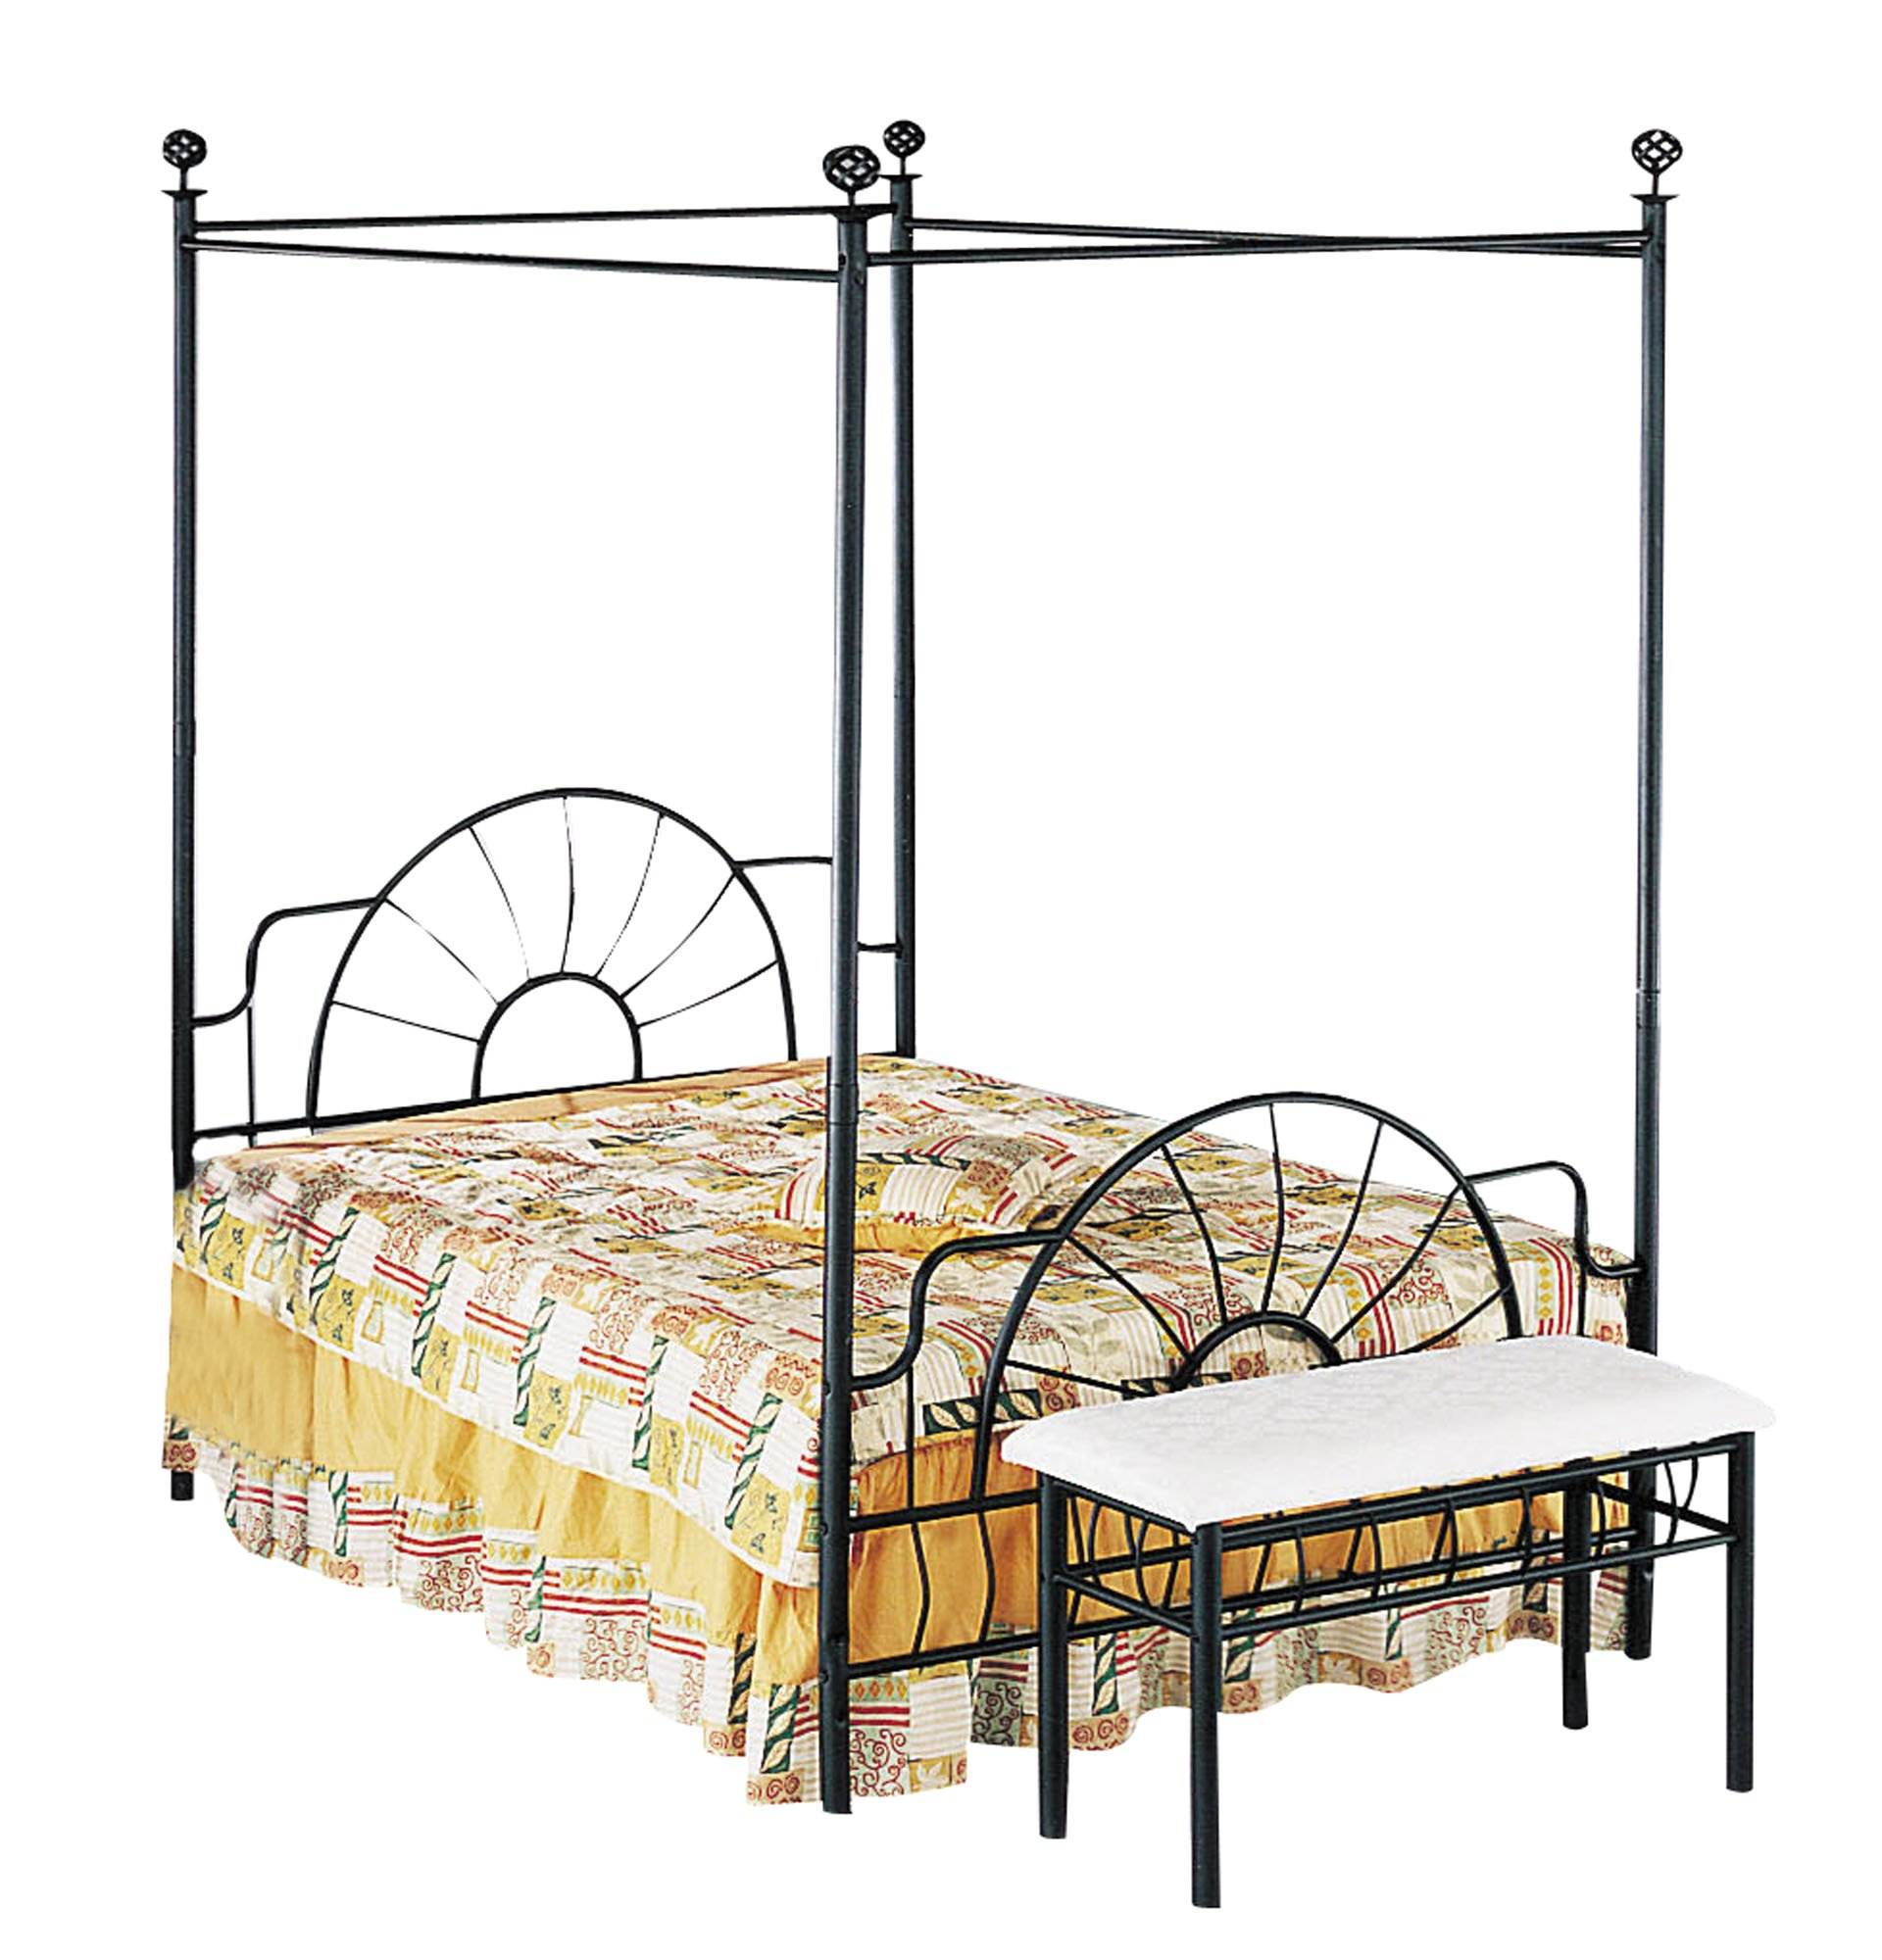 ACME 02084Q Sunburst Queen Canopy Bed HB/FB, Black Finish by acme